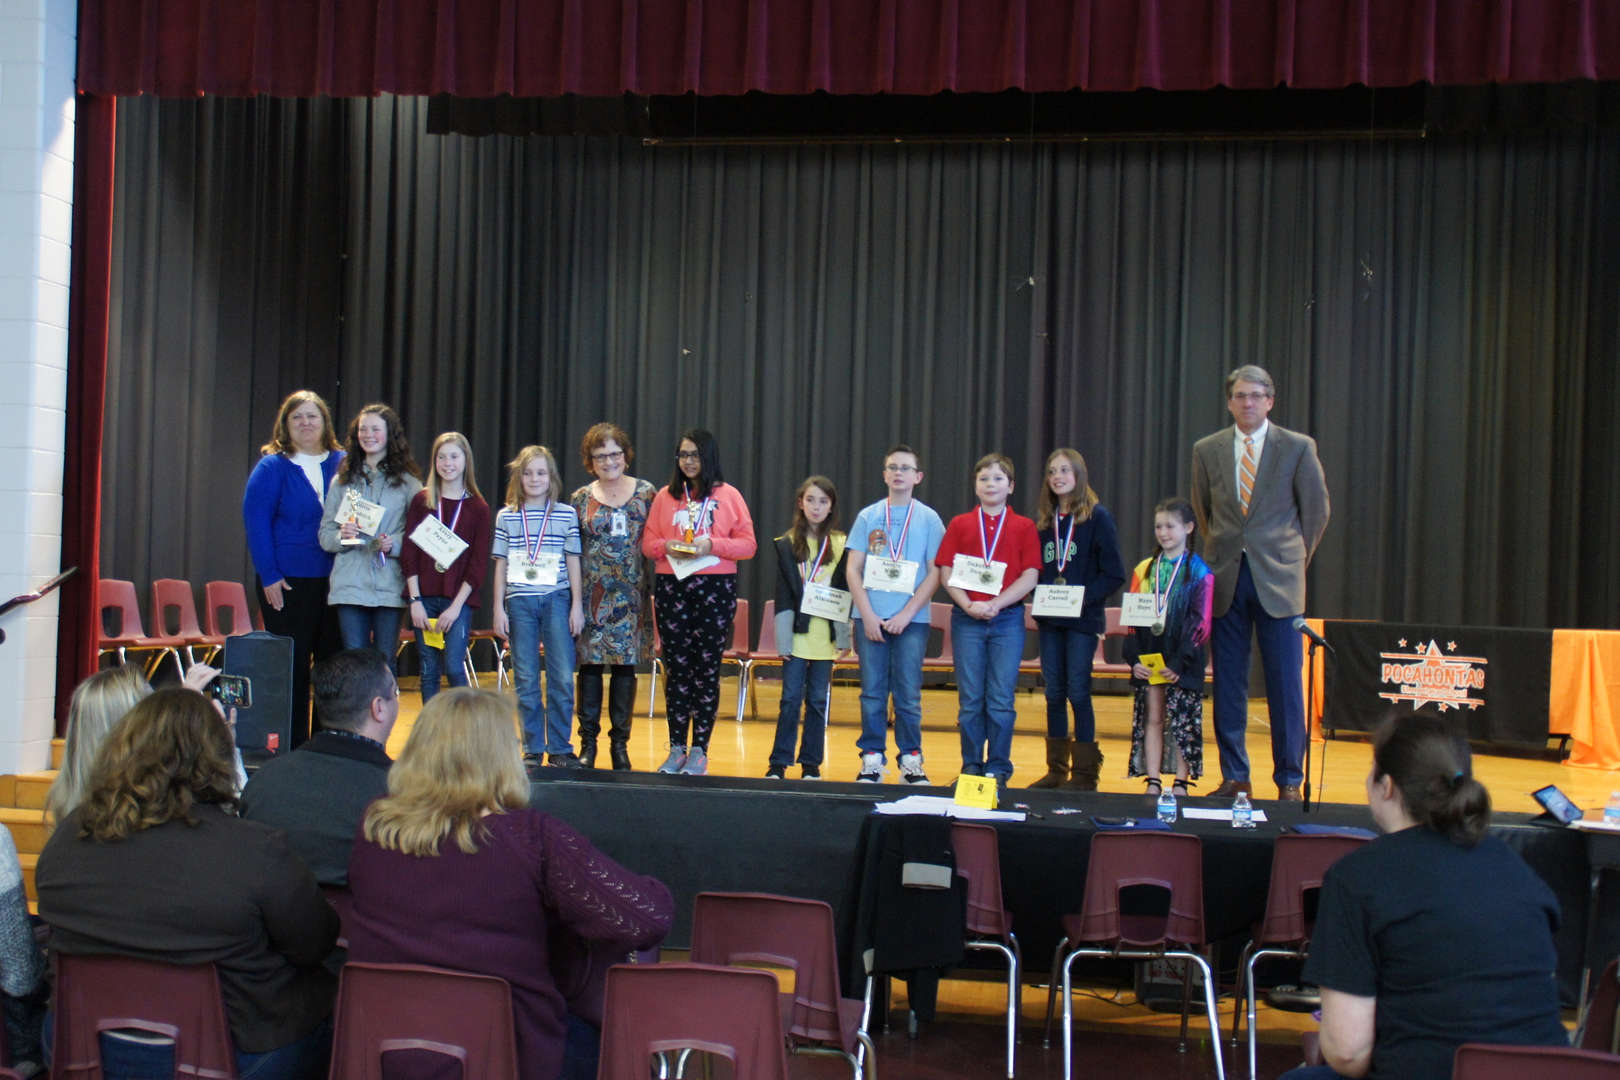 All 2020 Spelling Bee Participants